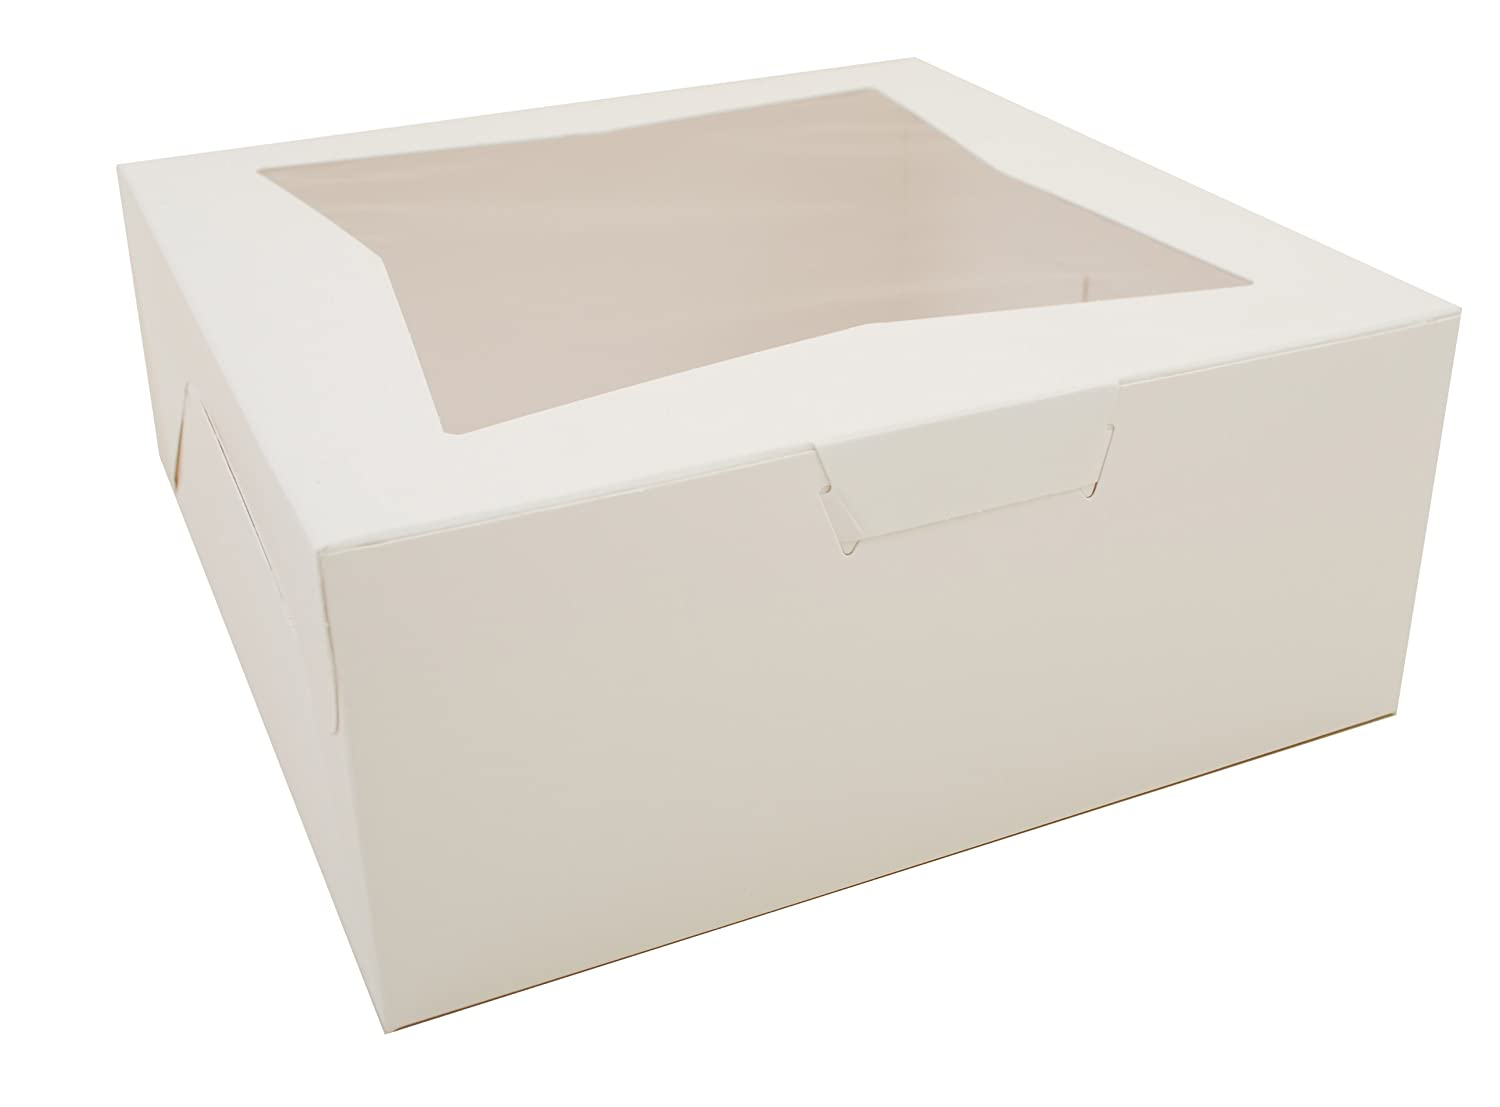 Southern Champion Tray 23073 Paperboard White Lock Corner Window Bakery Box, 12